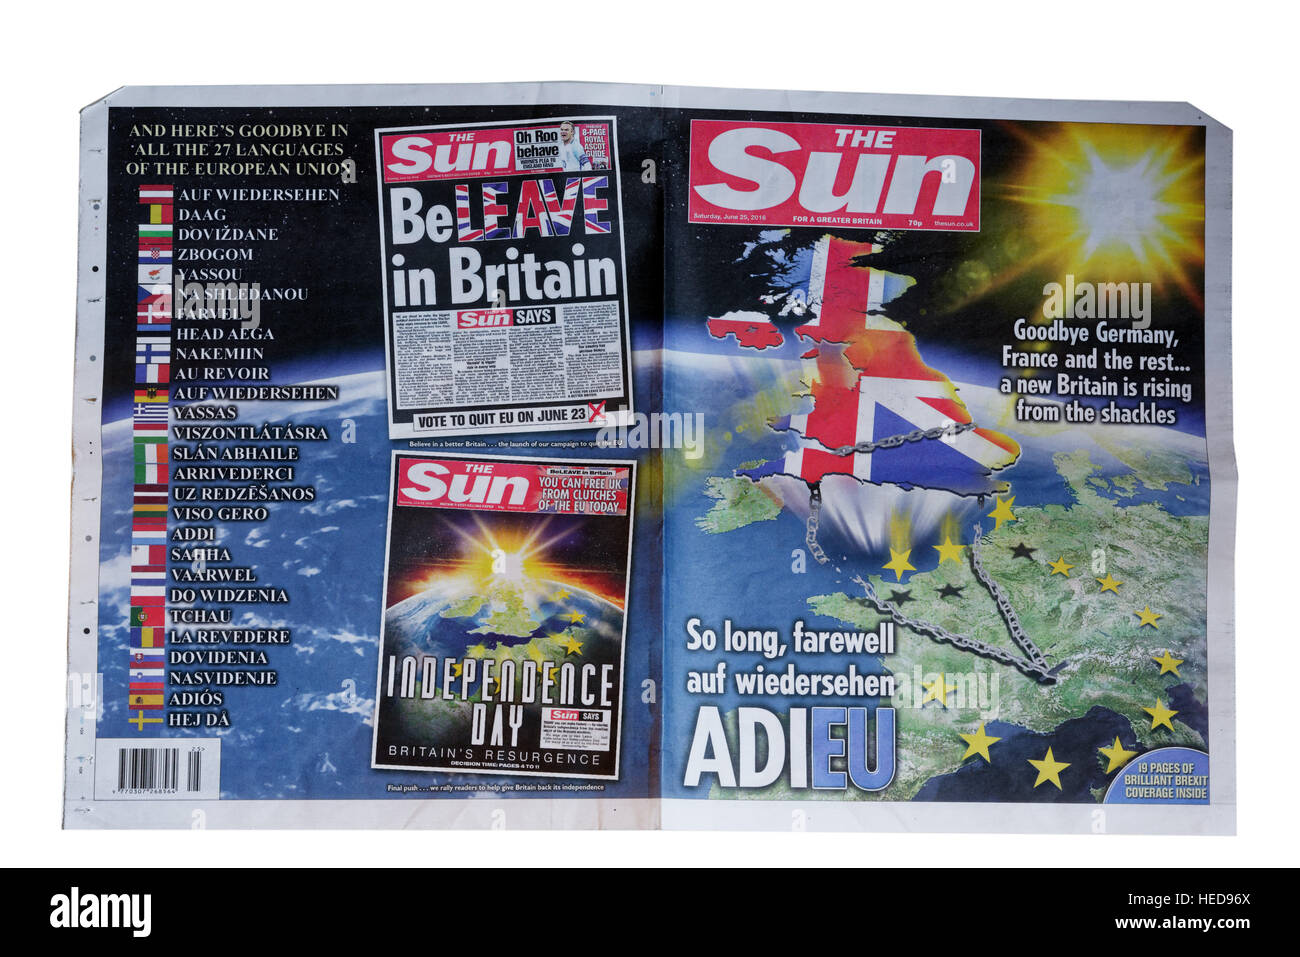 The Sun front page from June 25 2016 celebrating Brexit, the UK decision to leave the European Union after the referendum - Stock Image